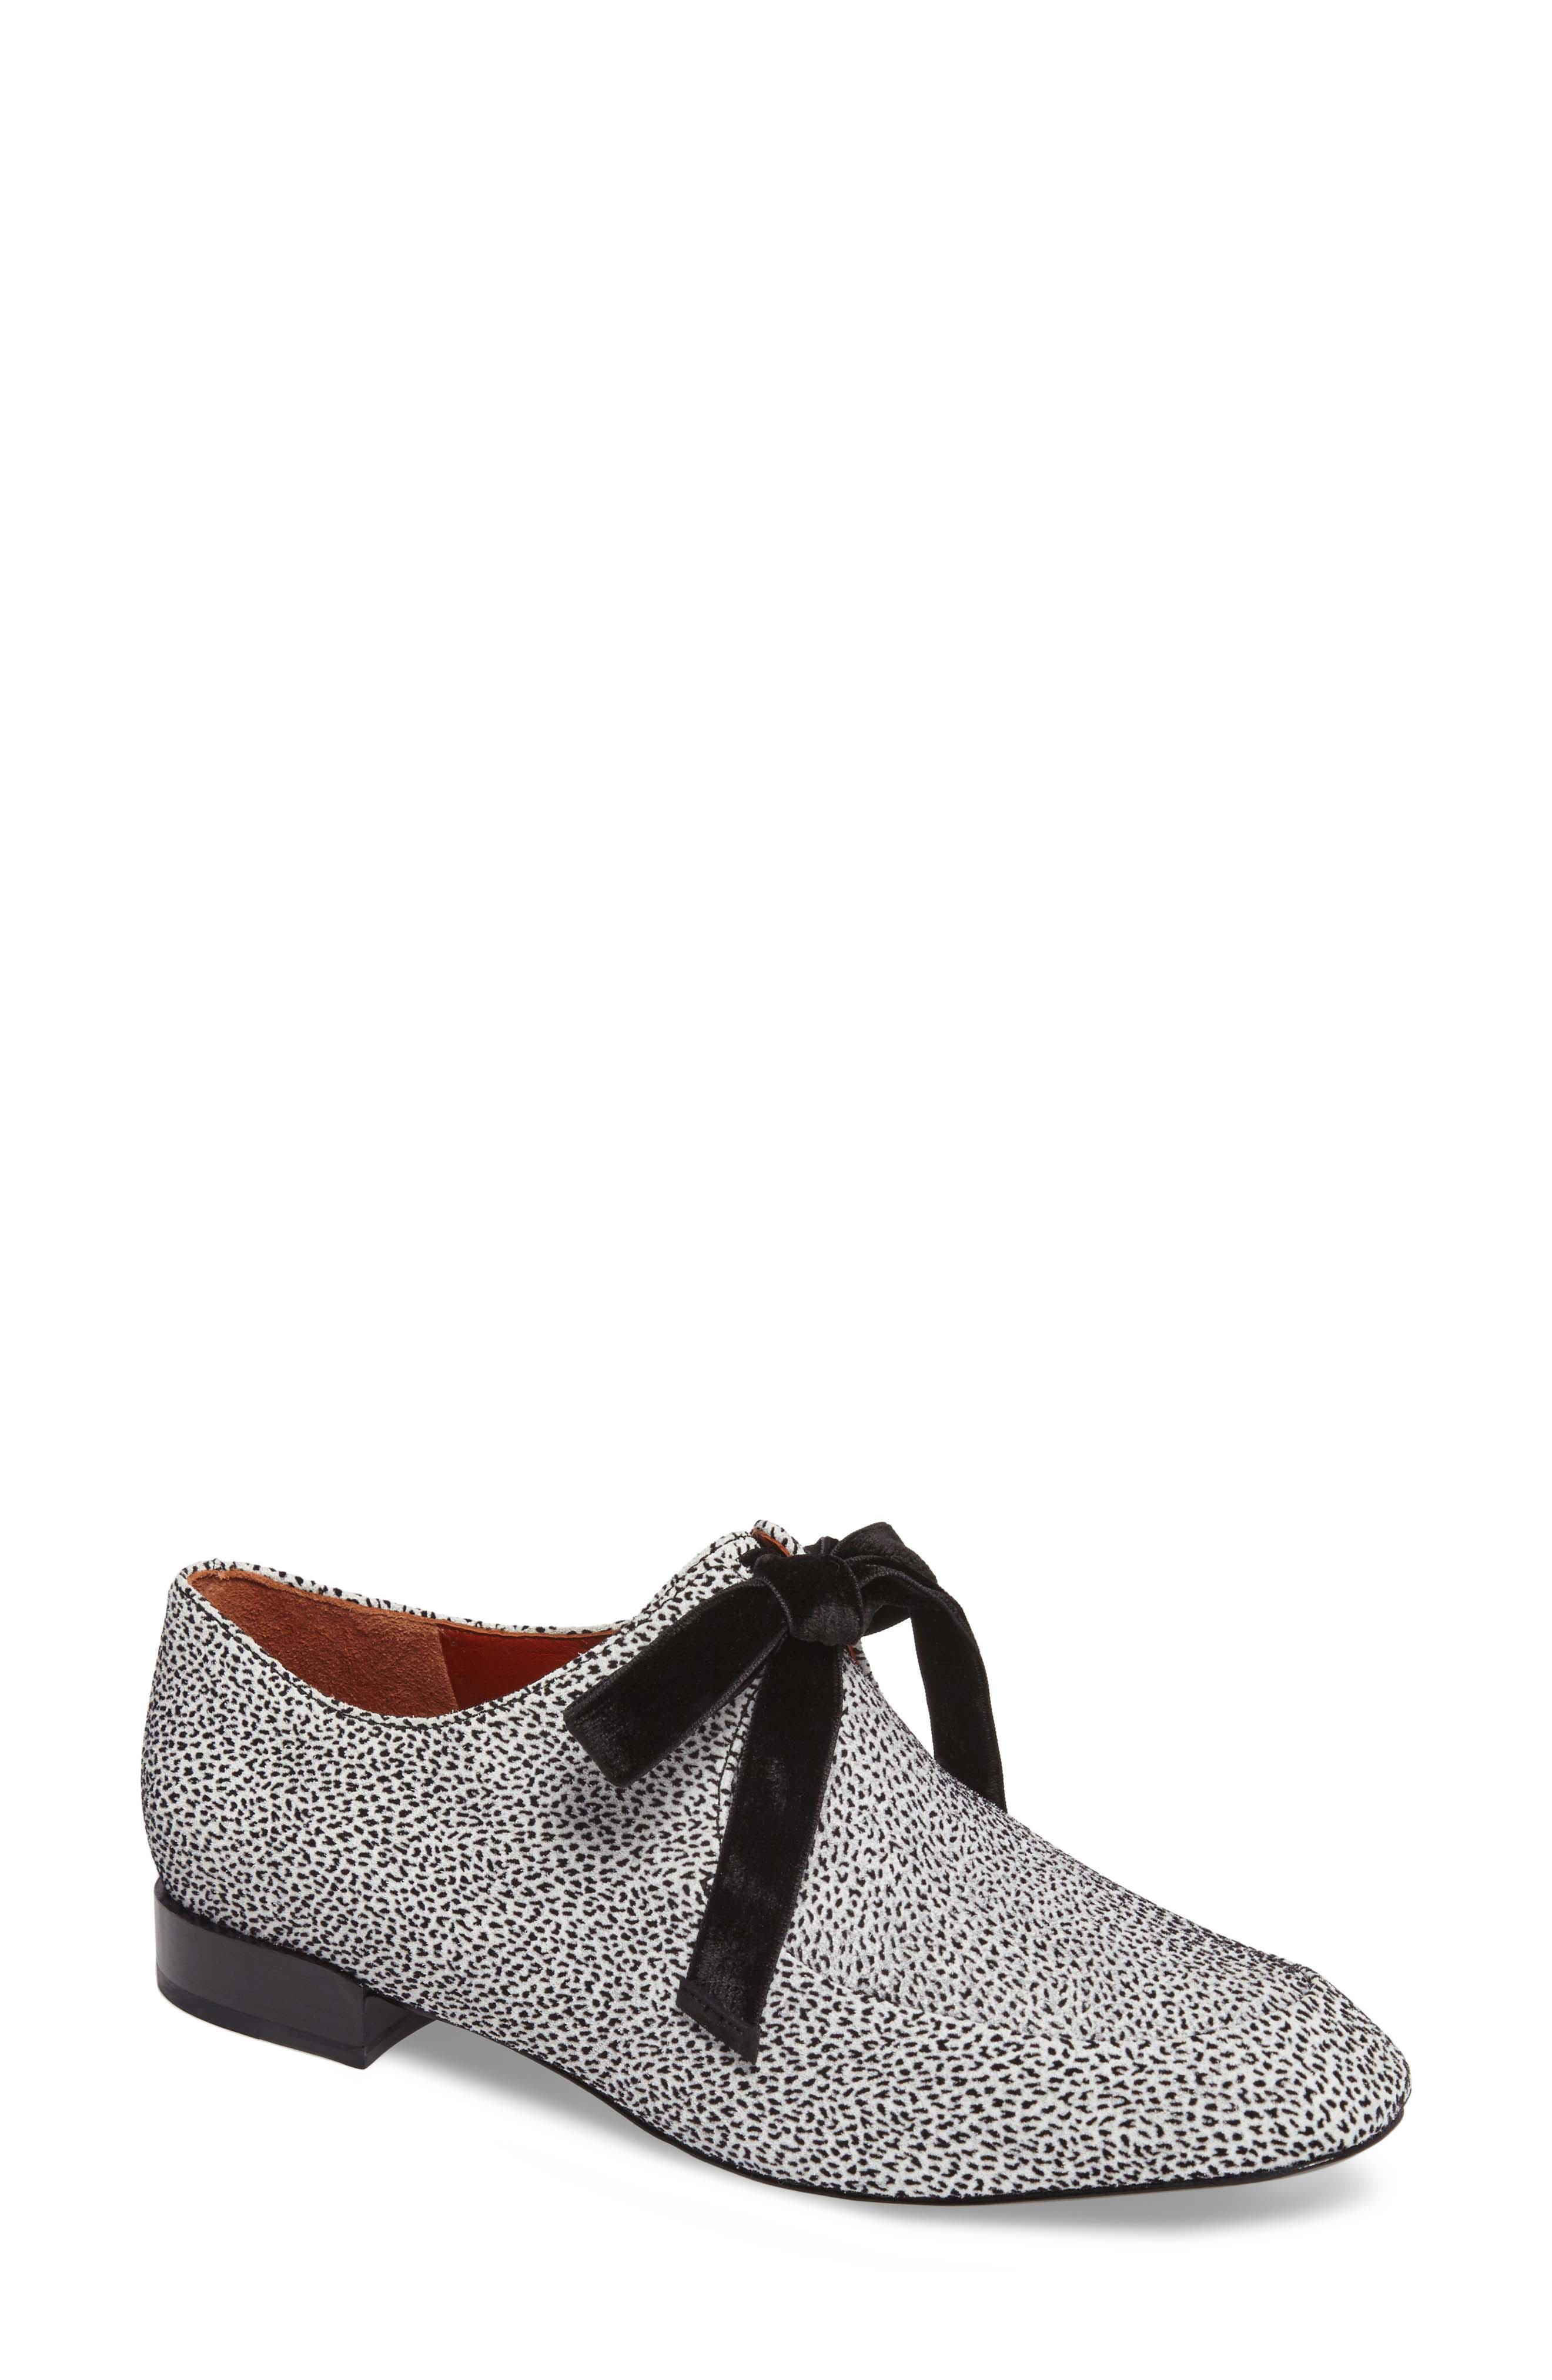 Main Image - 3.1 Philip Lim Velvet Bow Loafer (Women)